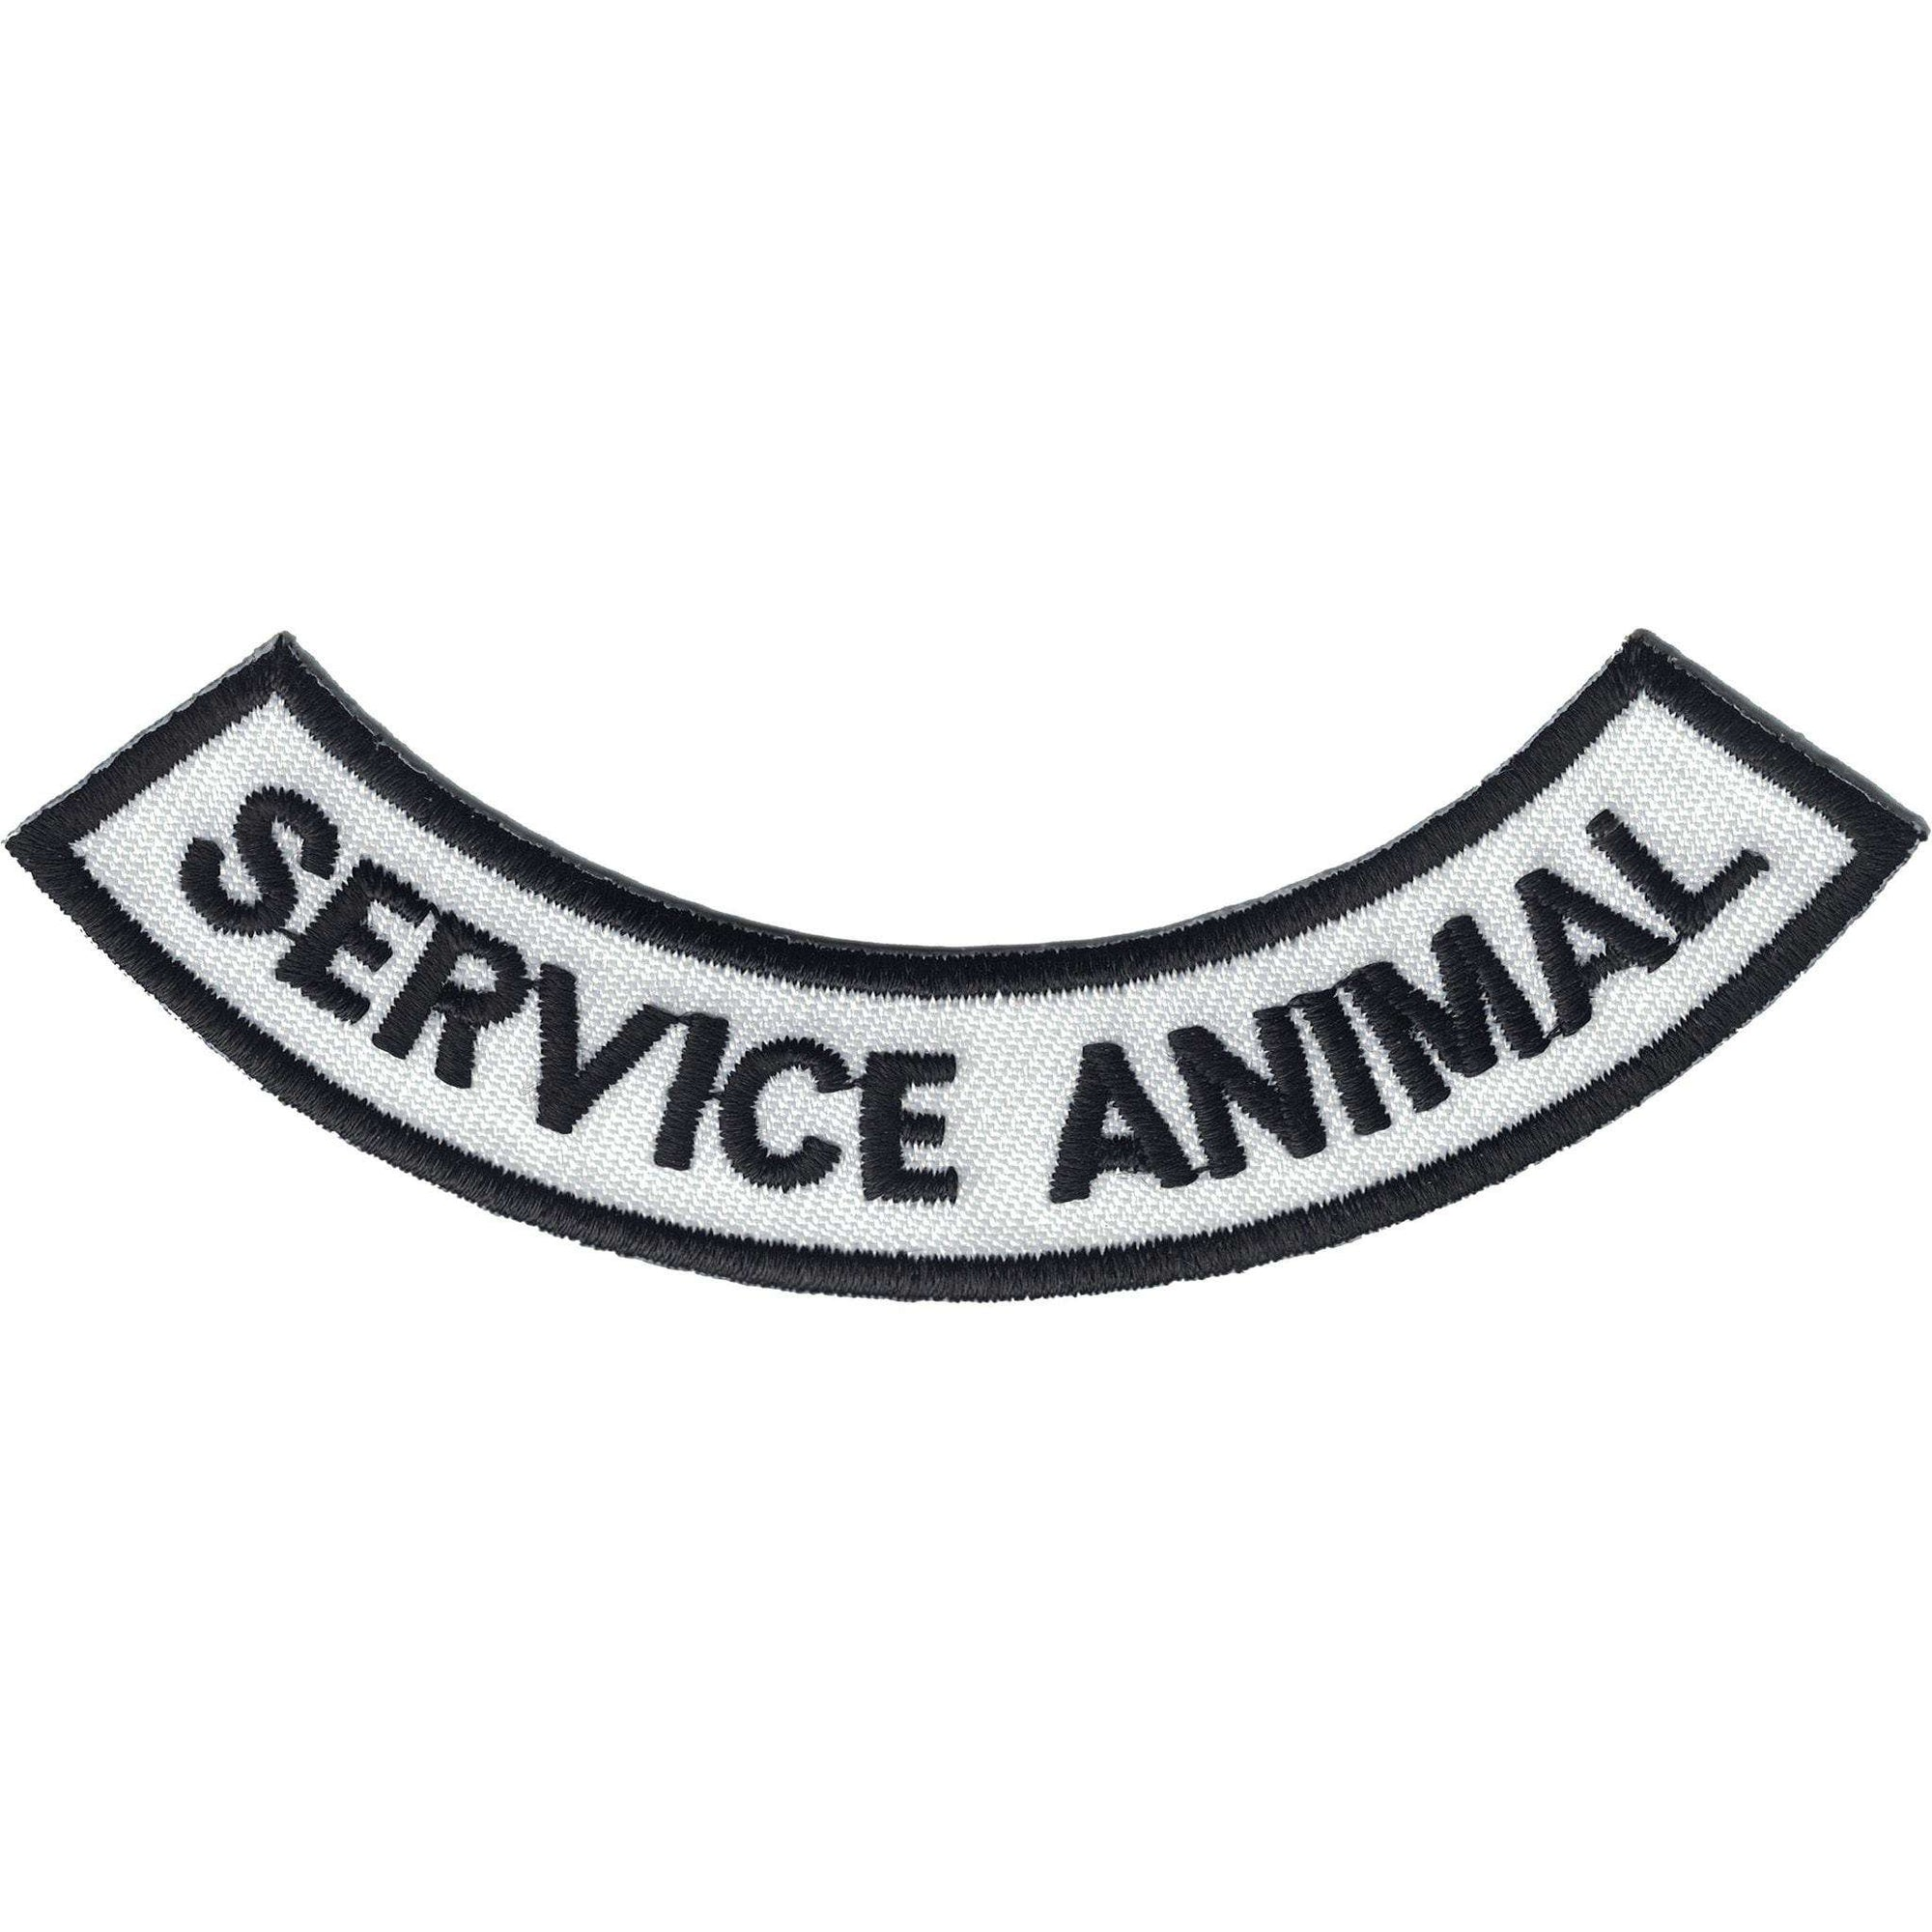 Non-species specific service animal patches.